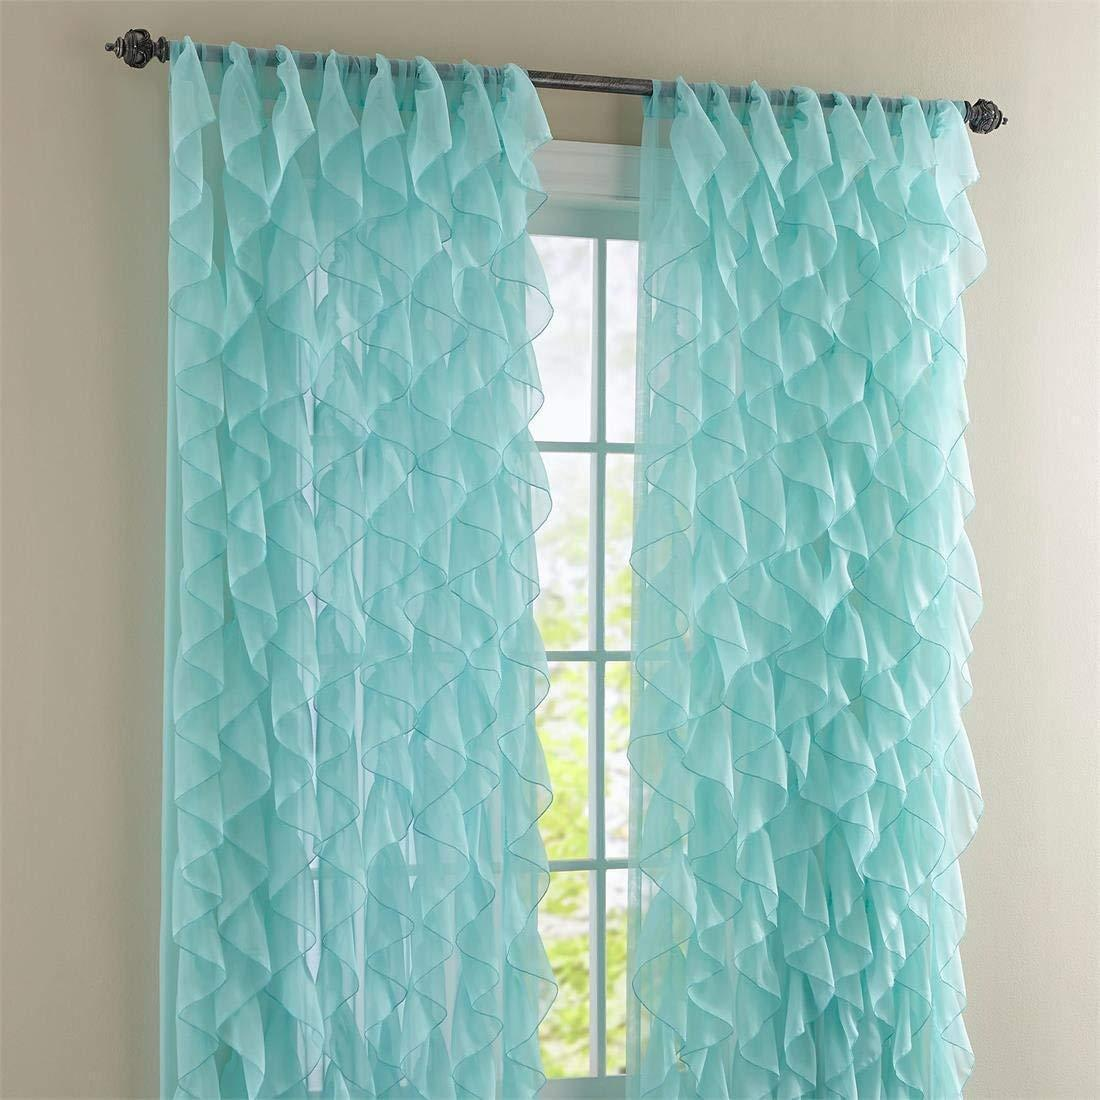 "Two (2) Cascade Ruffled Curtain Panels, each 50"" wide by 63"" long, Sea - $51.98"